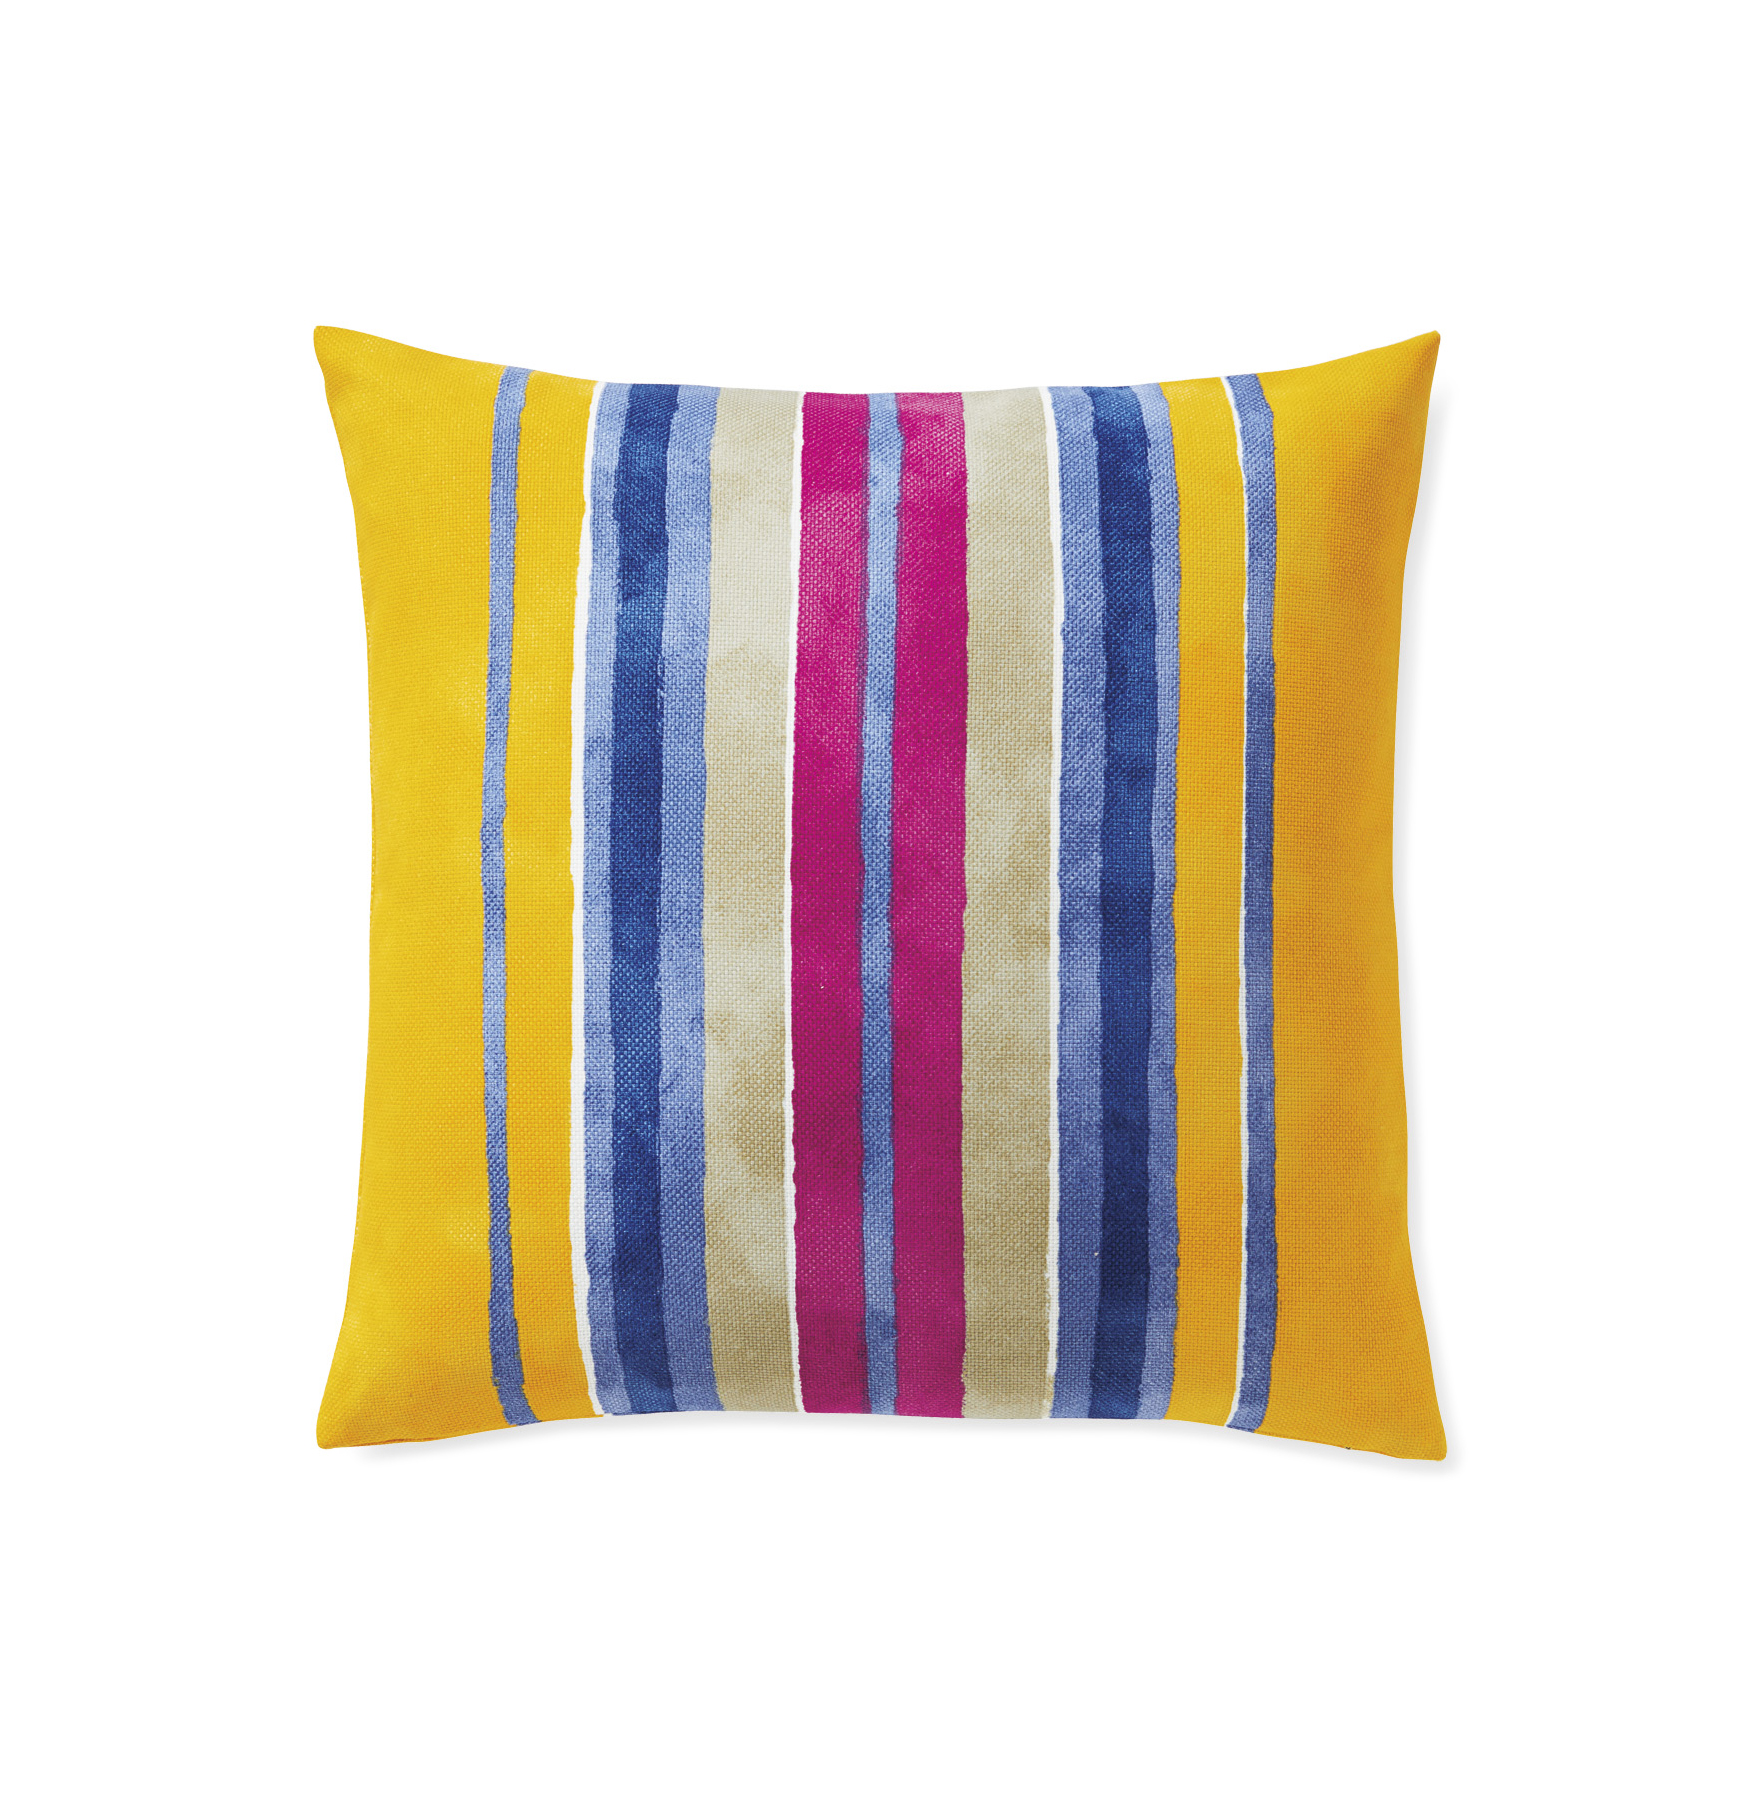 Sonoma Stripe Outdoor Pillow Cover